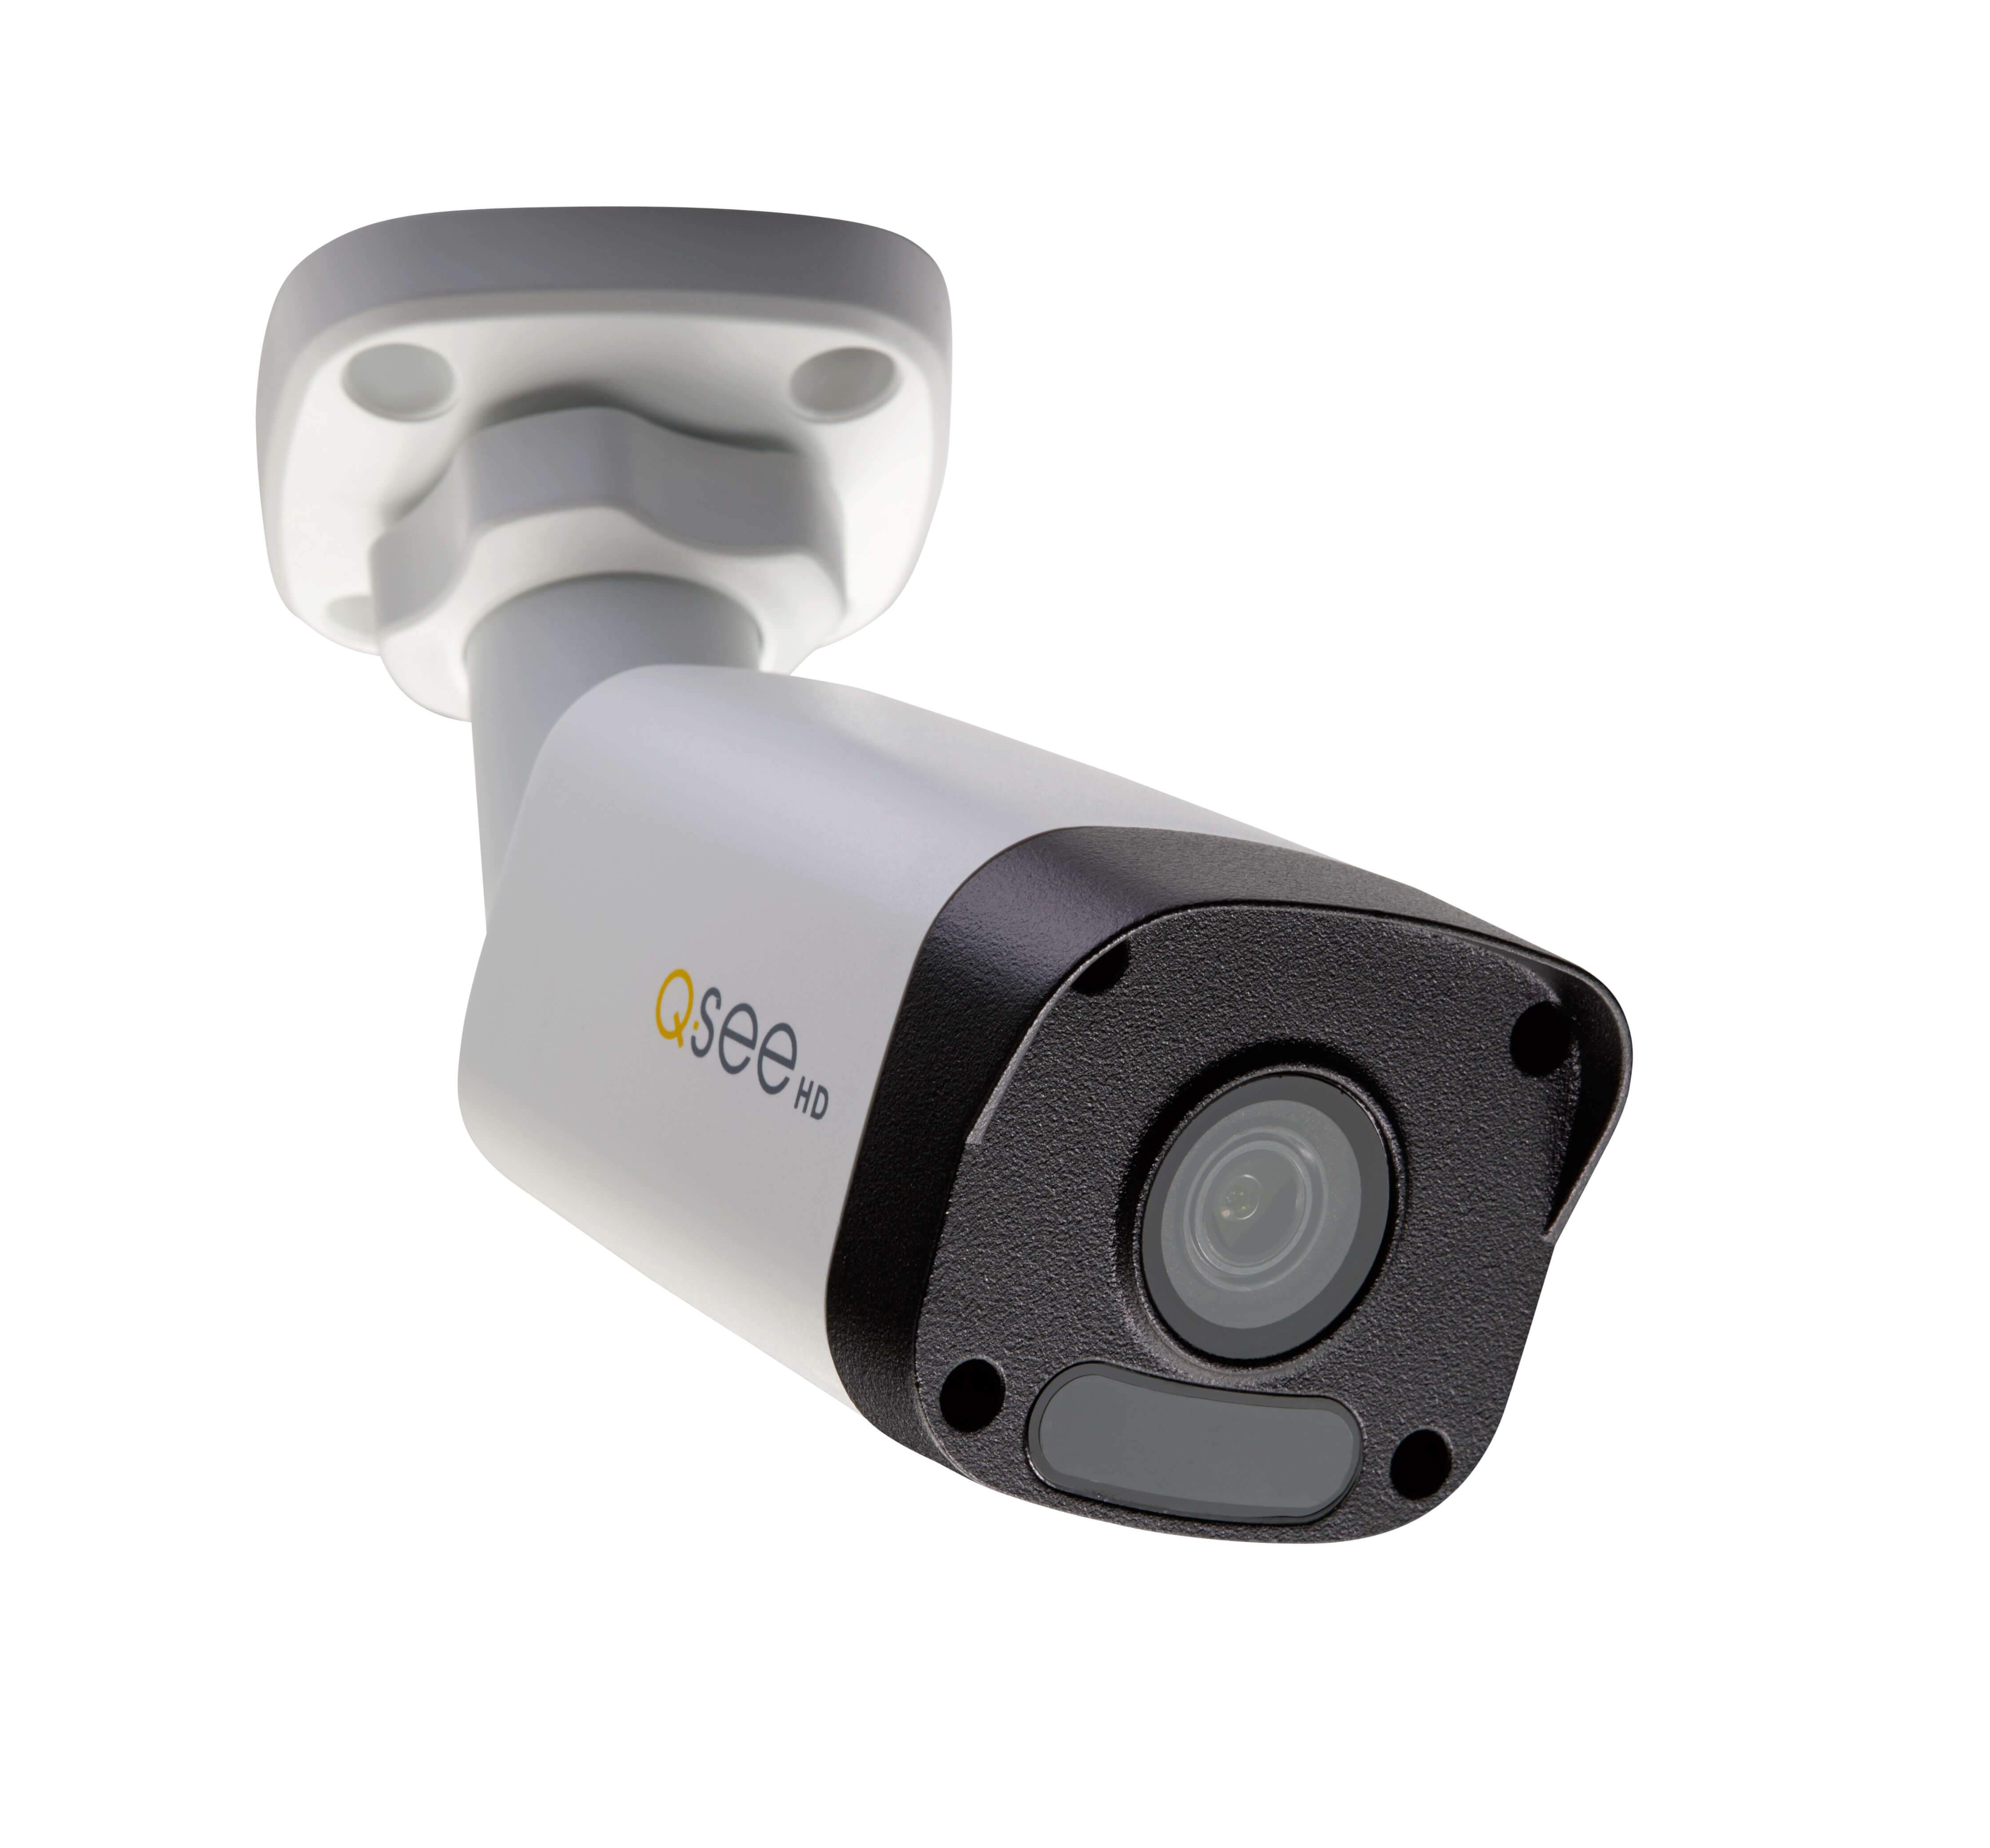 Cavalier 5MP IP HD Outdoor Bullet Camera with Color Night Vision, 2-Pack (CV5MB1.1-2)